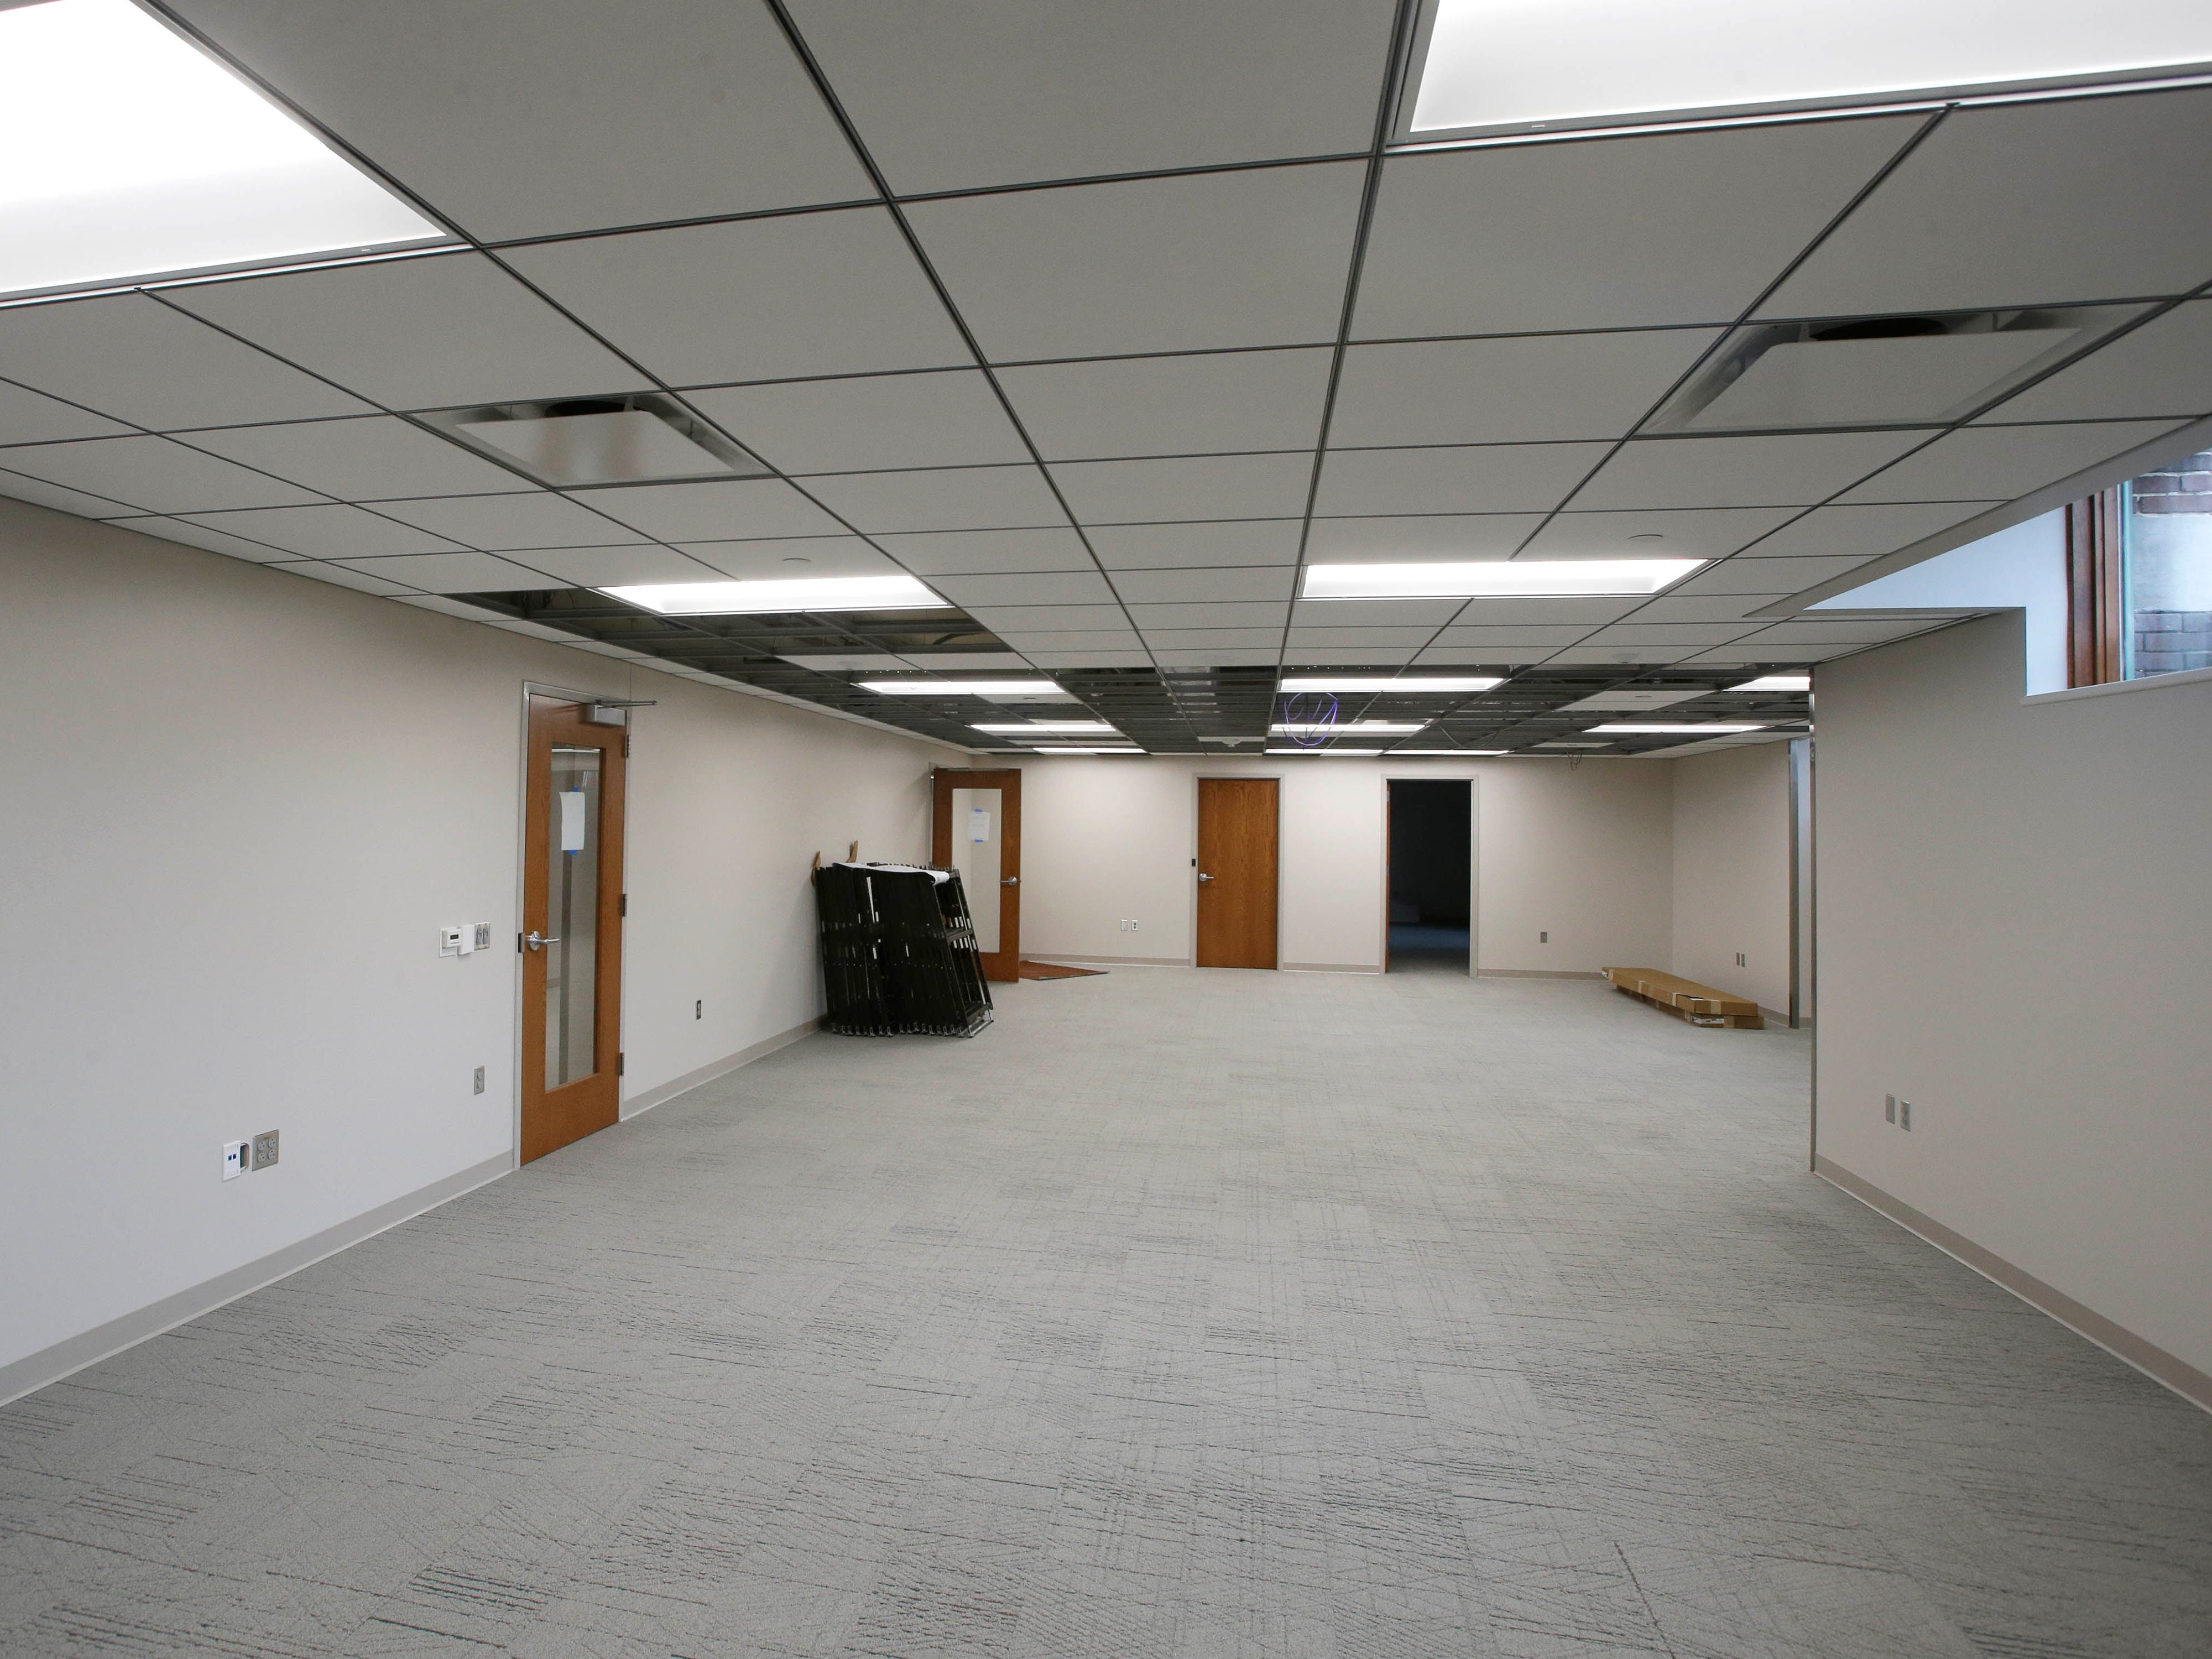 The remodeled meeting room area in the basement at Sheboygan City Hall as seen, Tuesday, May 7, 2019, in Sheboygan, Wis.